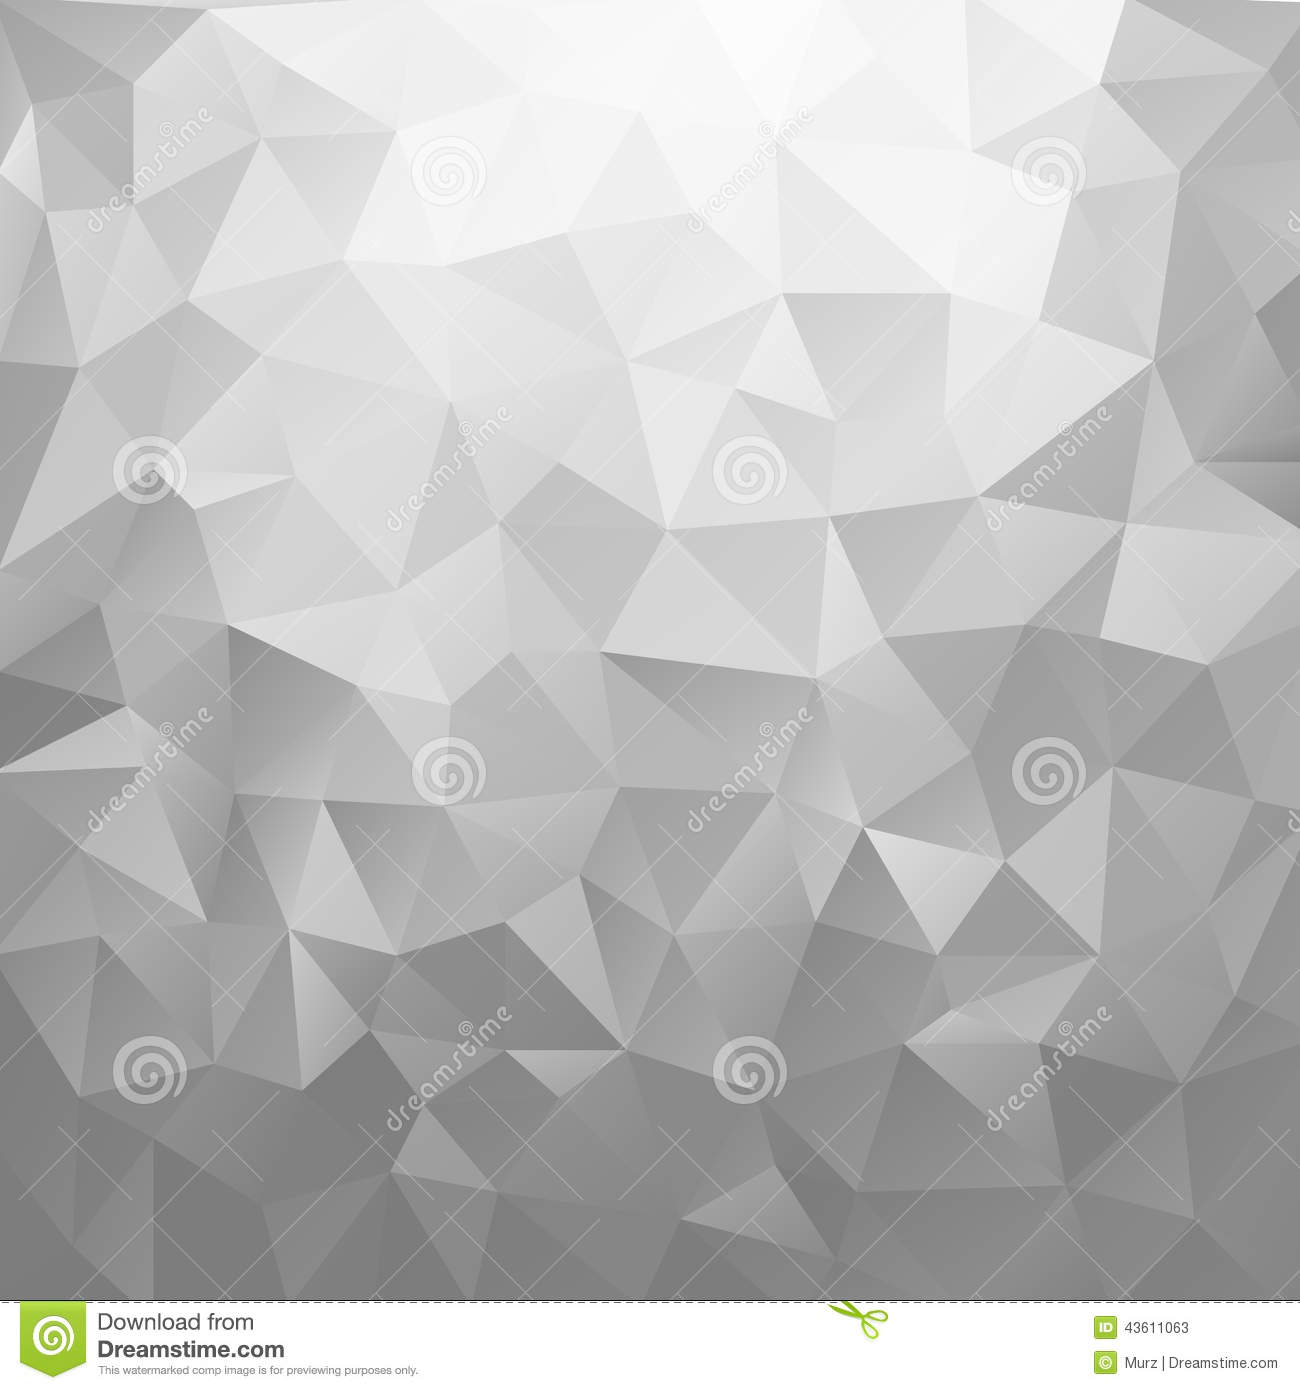 Abstract silver shiny background. Geometric vector illustration.